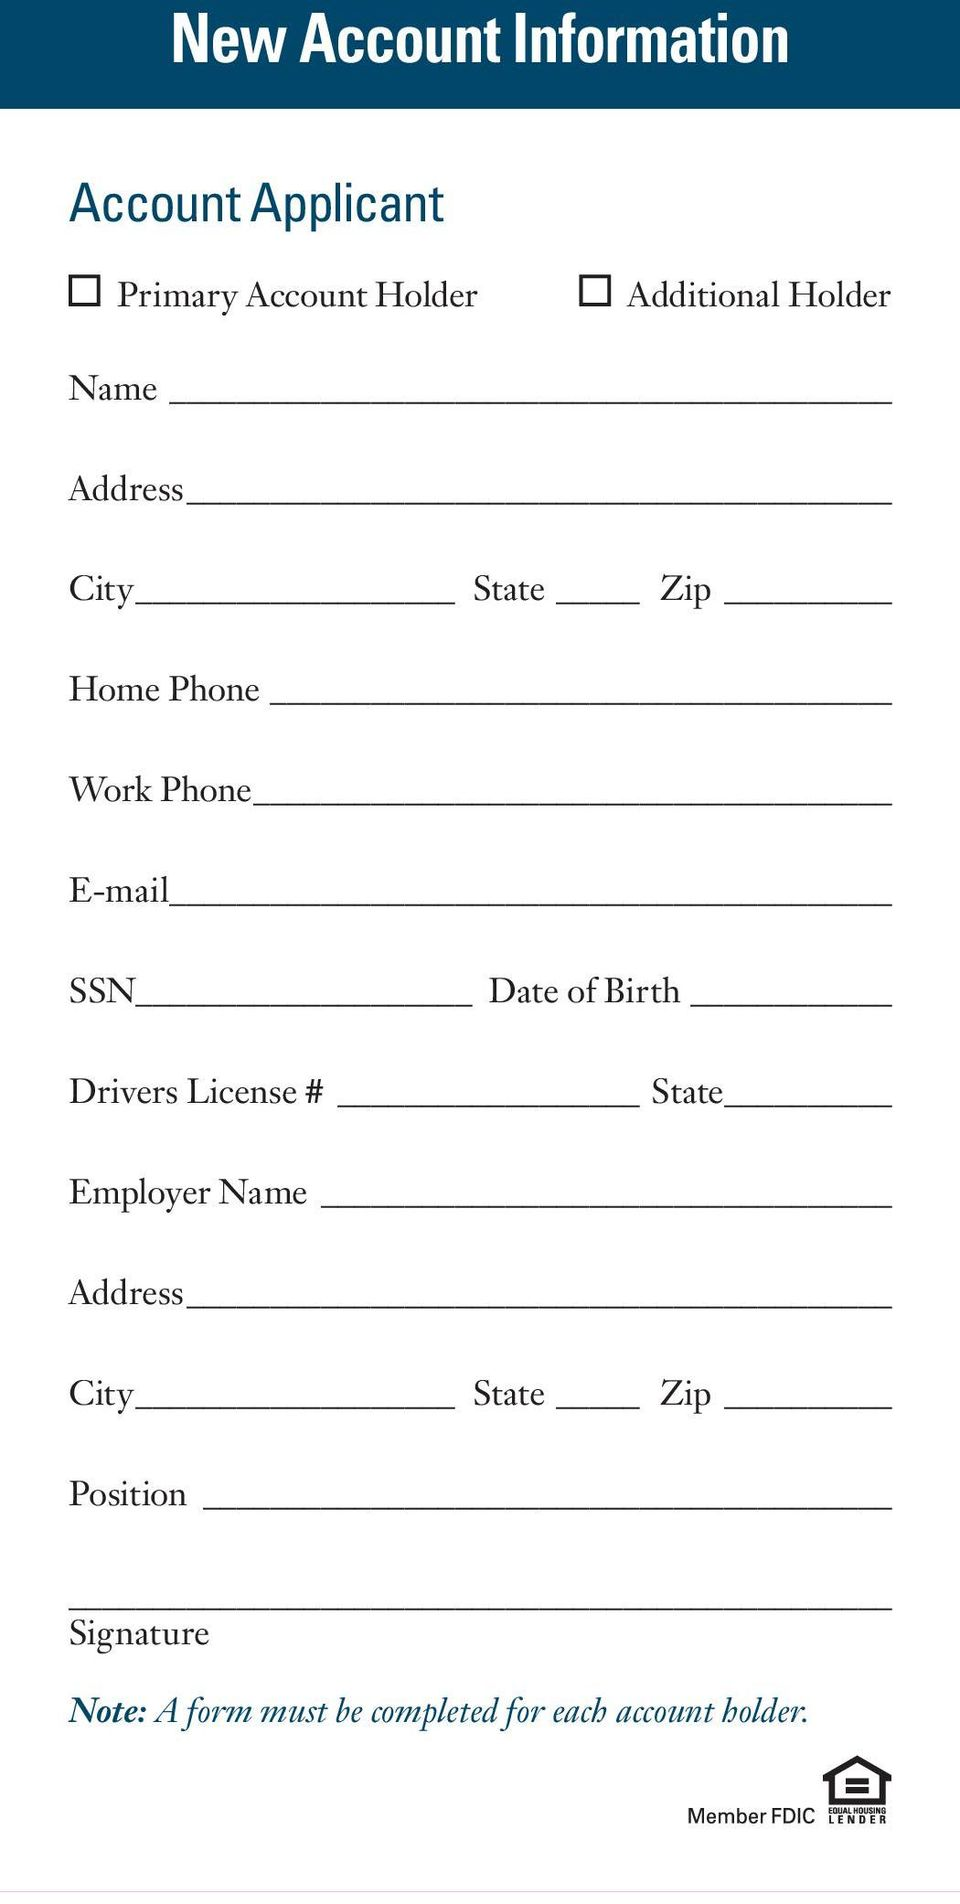 SSN Date of Birth Drivers License # State Employer Name